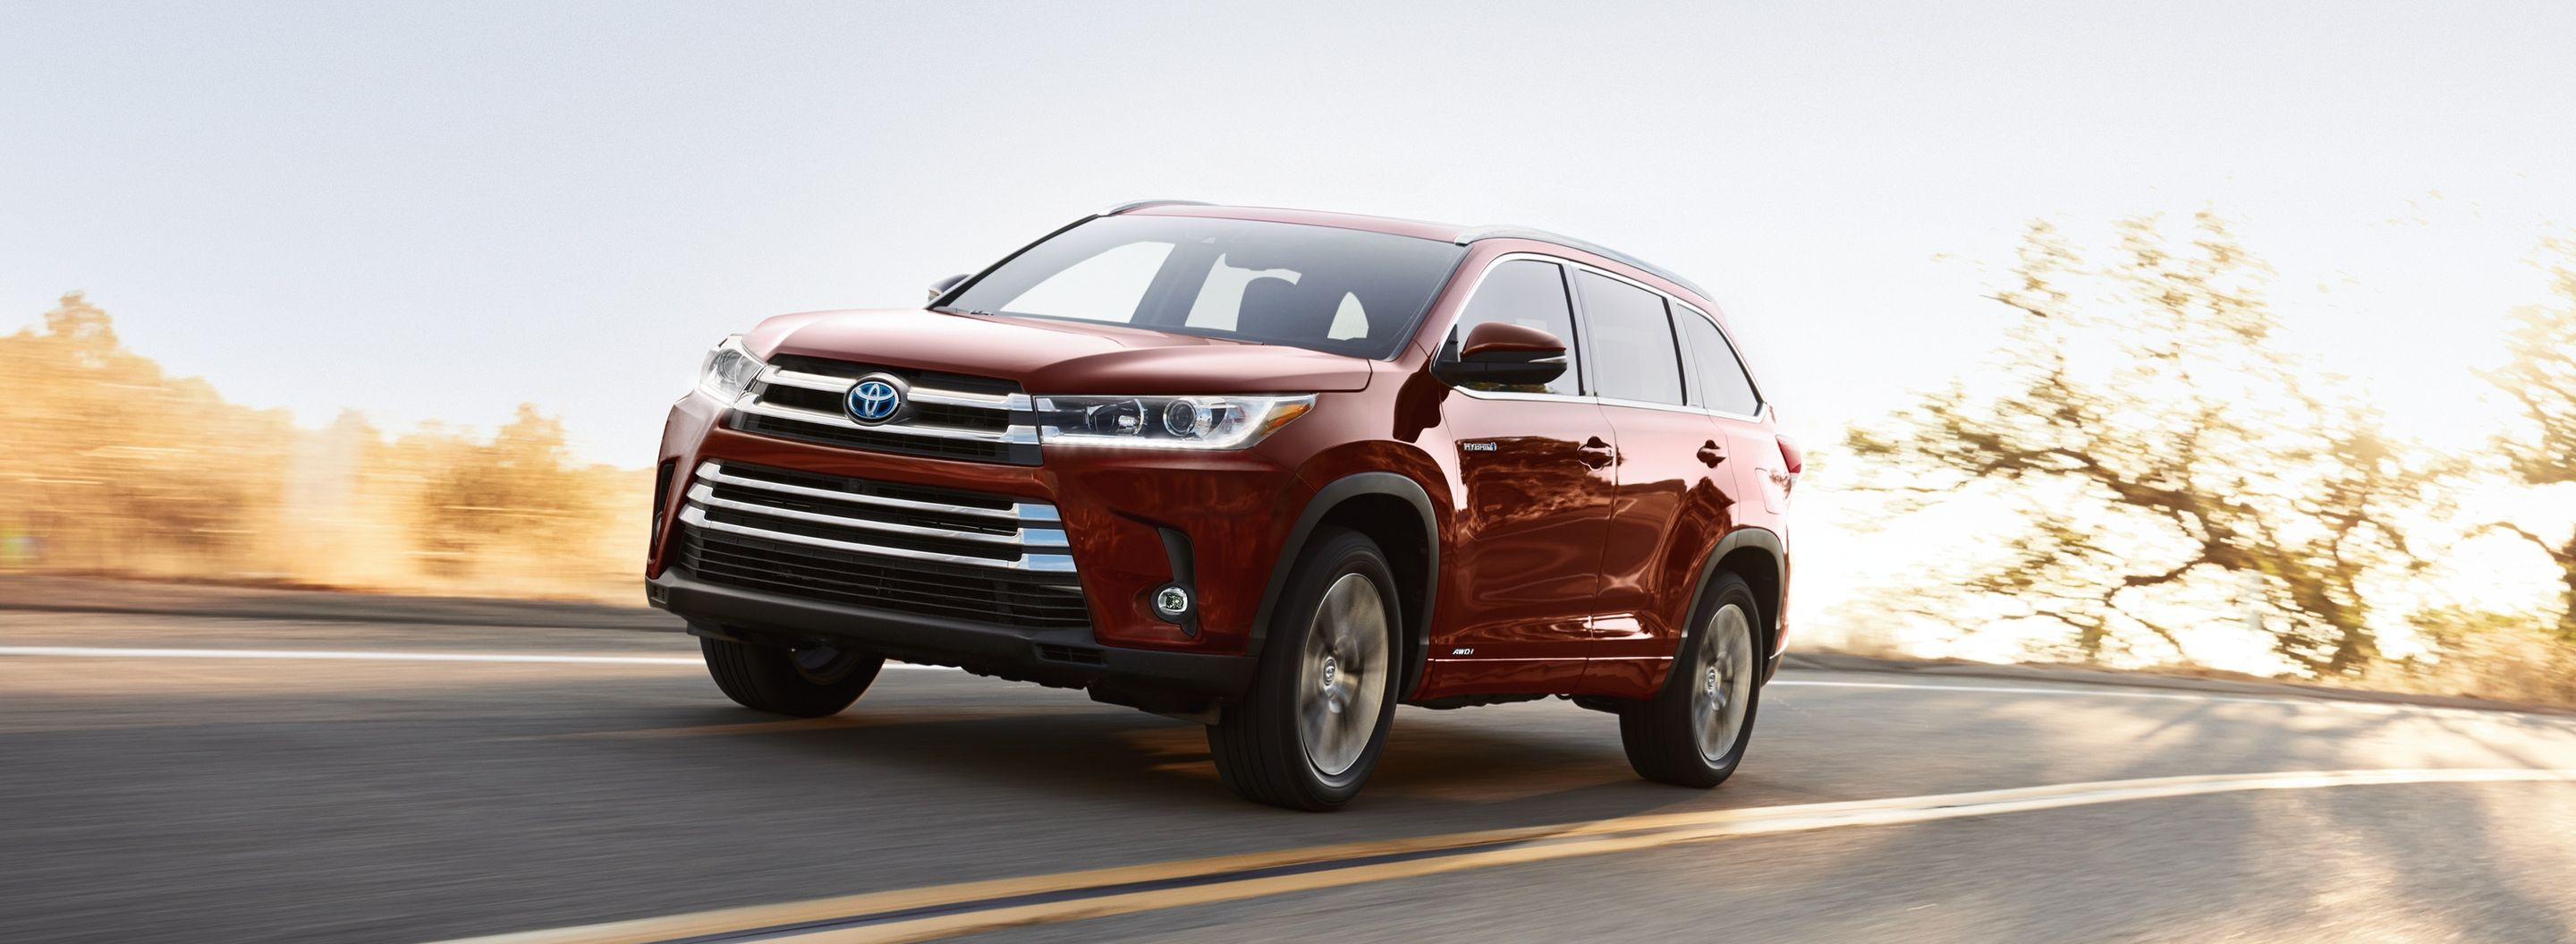 2019 Toyota Highlander for Sale near Aberdeen, SD